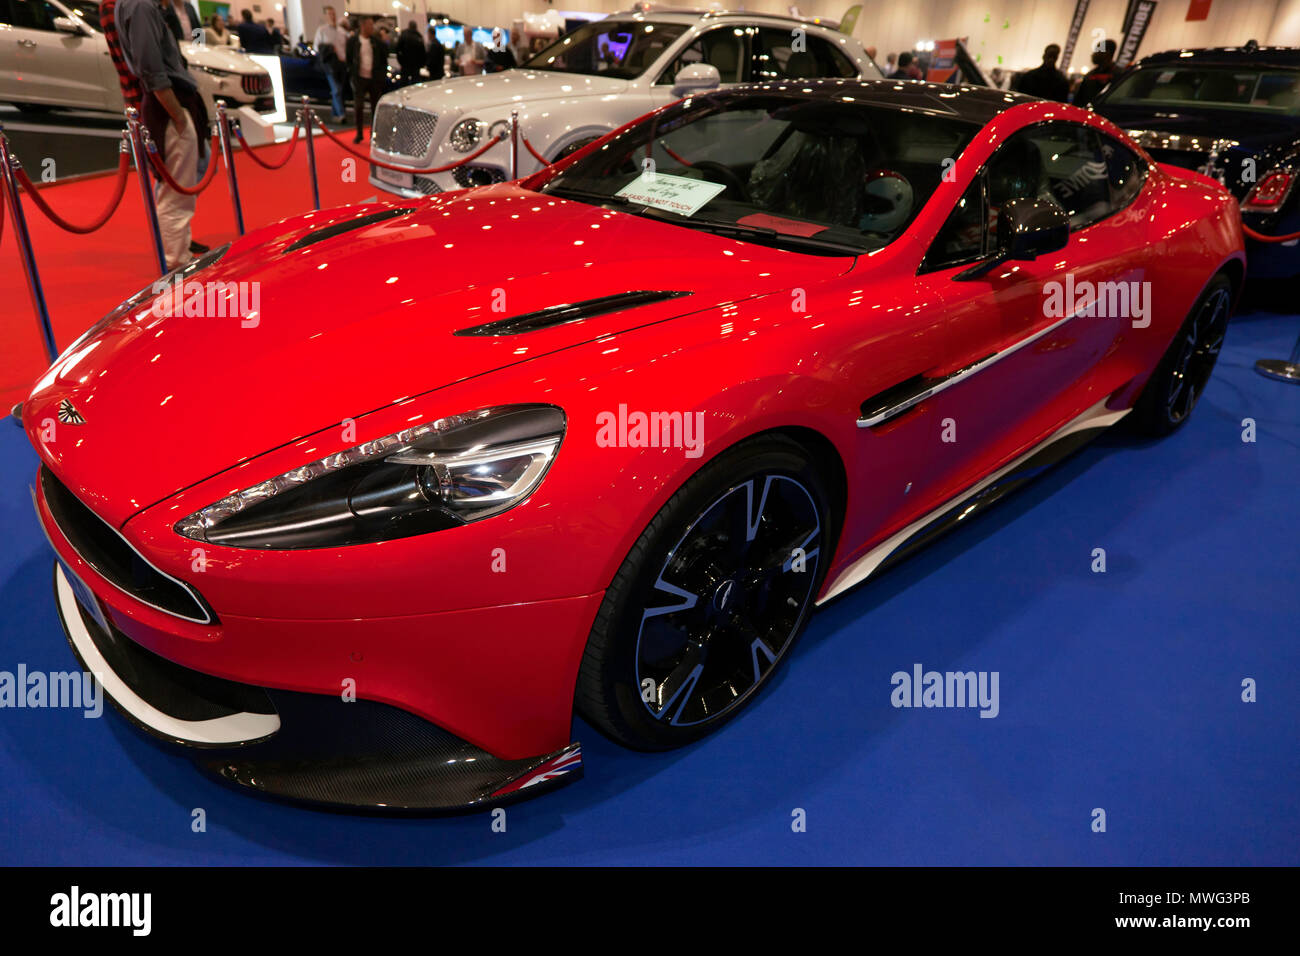 Three-quarter front view of, one of the,  Red Arrows Edition Aston Martin Vanquish S, on the RAF Benevolent Fund Stand, at the 2018 London Motor Show - Stock Image